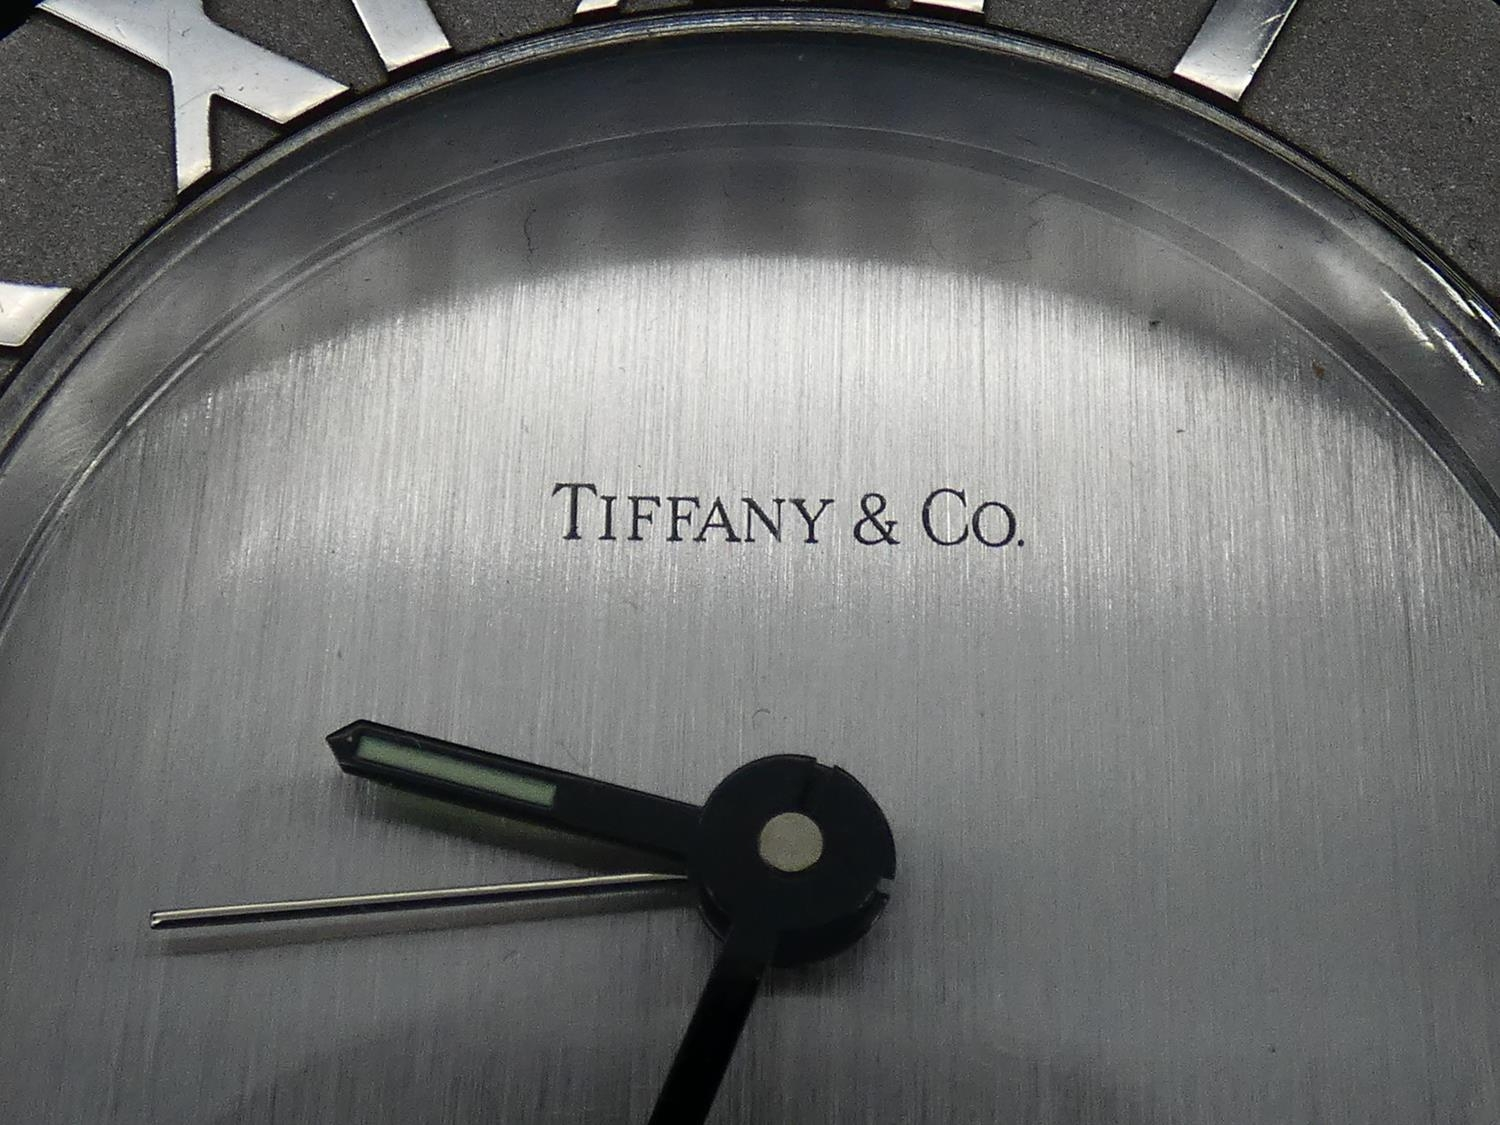 A Tiffany & Co Swiss made stainless steel Roman numeral quartz alarm clock with brushed chrome bezel - Image 2 of 6